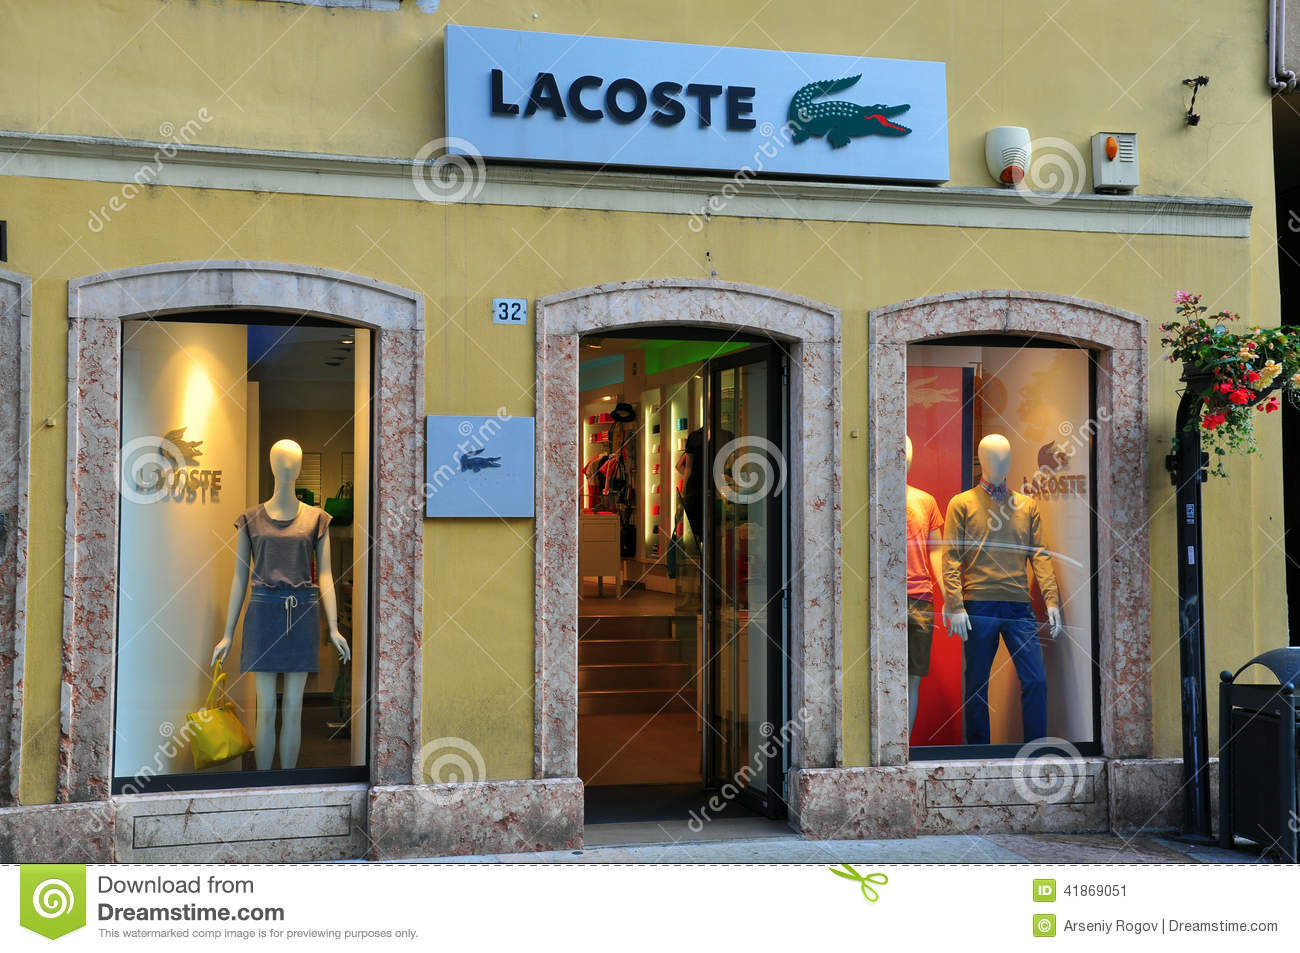 Lacoste store in Italy